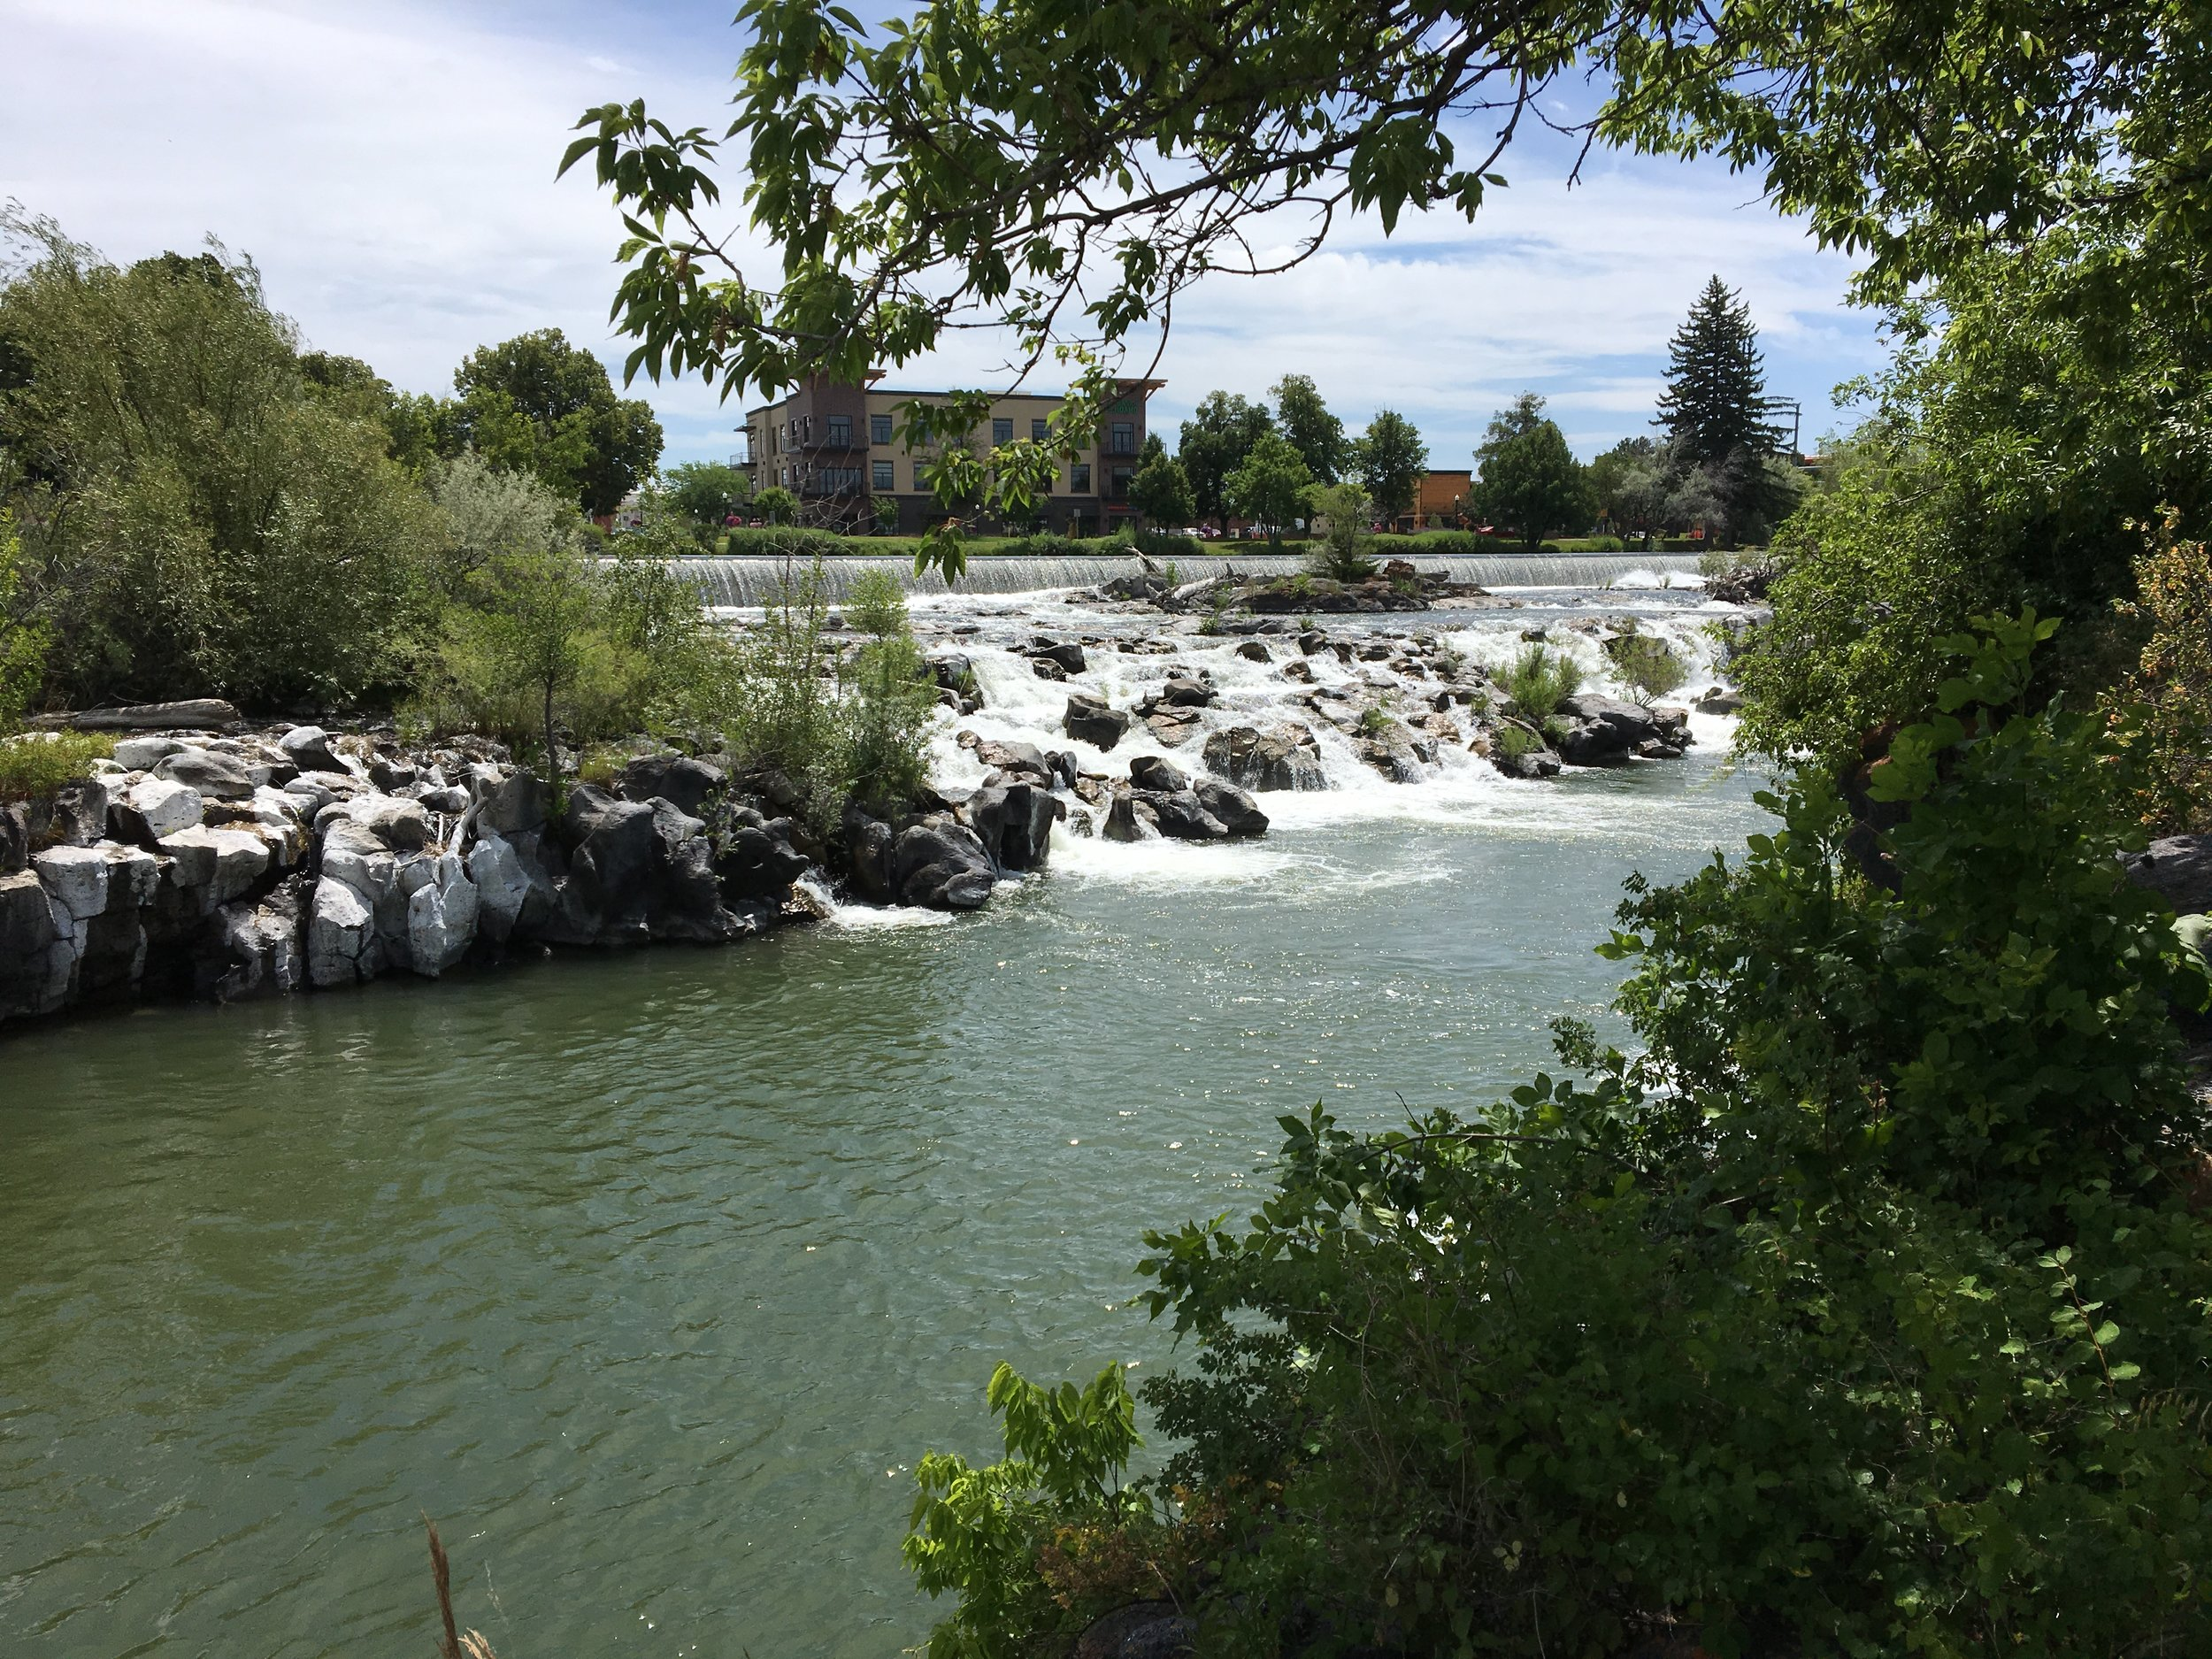 - Falls in the Snake River in the town of Idaho Falls where we're staying.